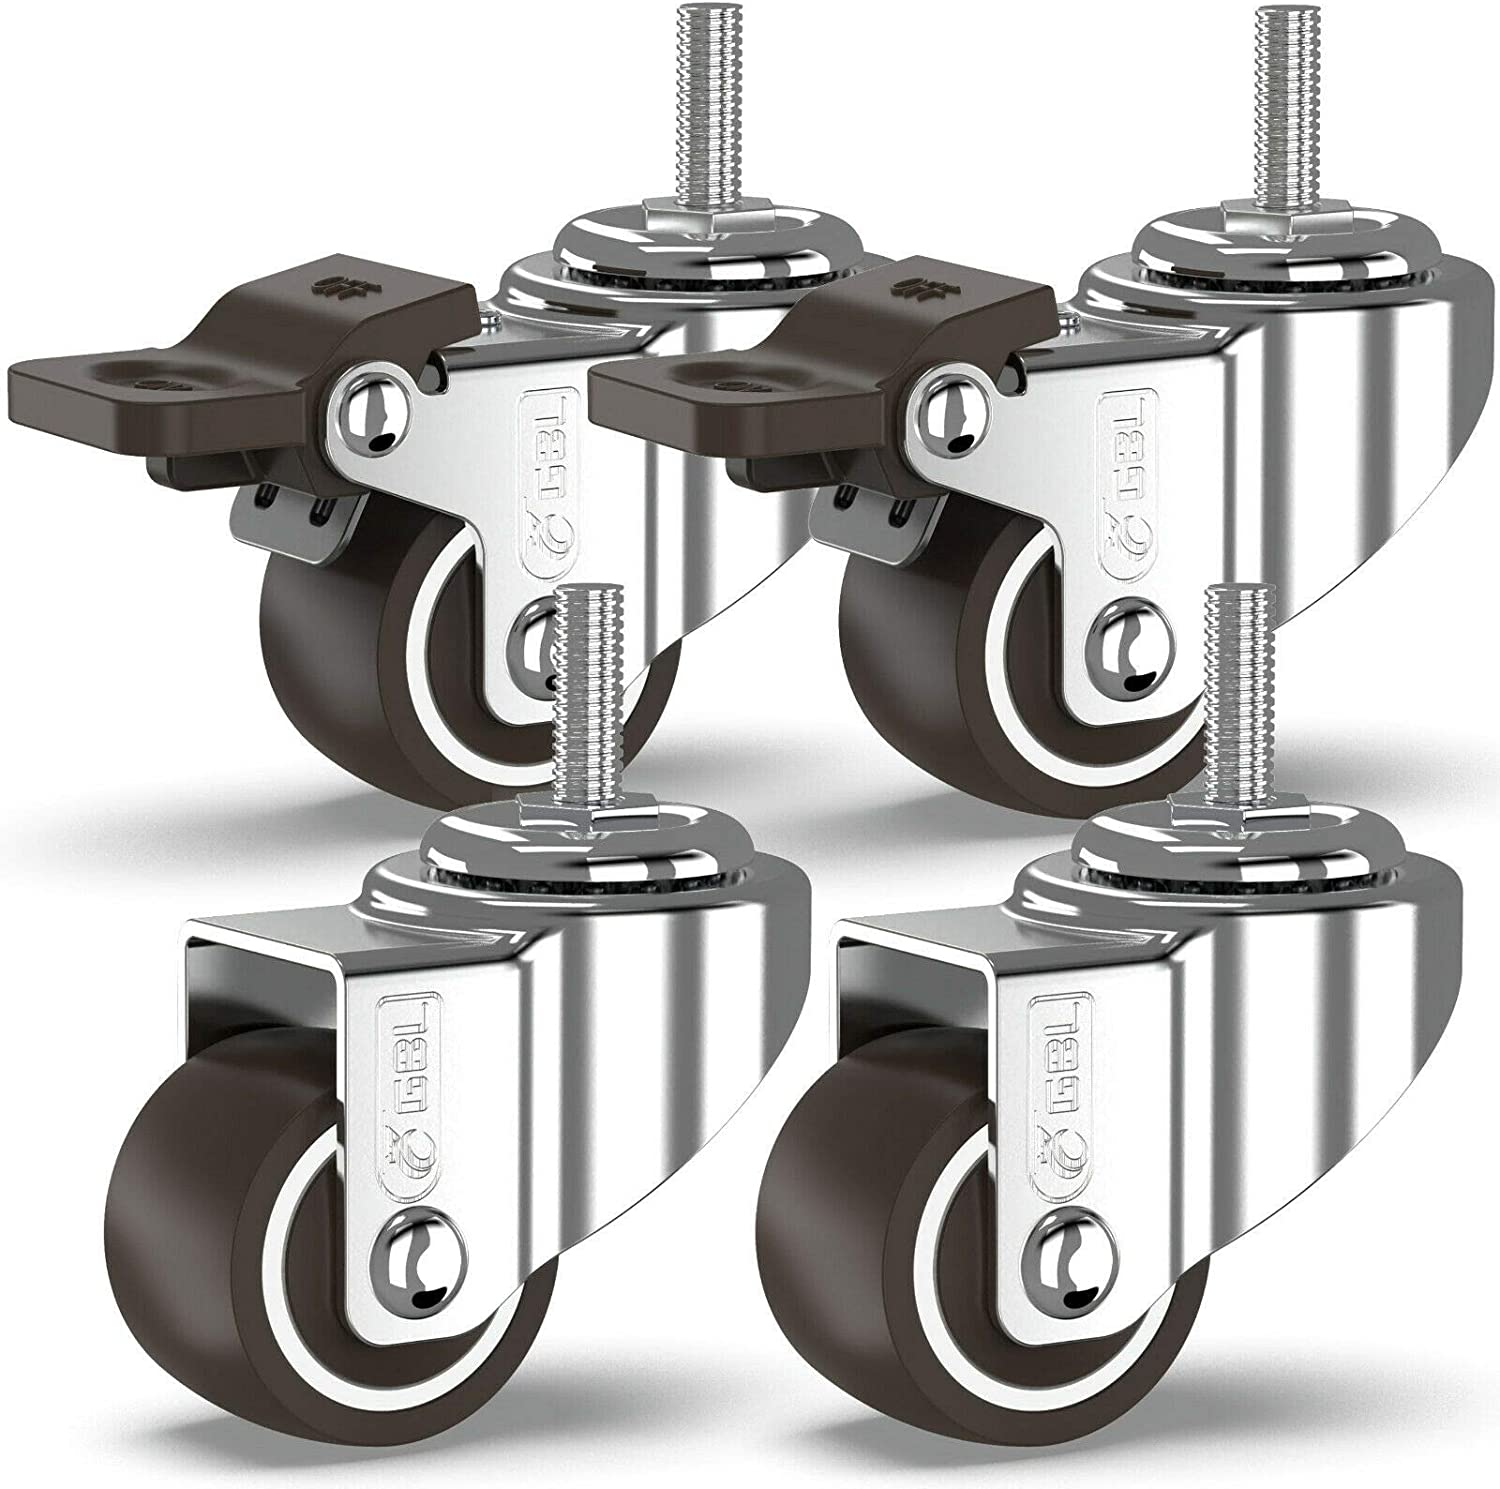 GBL - 1'' Small Caster Wheels | Stem Threaded M6x15mm 90Lbs | Low Profile | Dolly Wheels for Furniture Trolley Brake Hardwood Floors